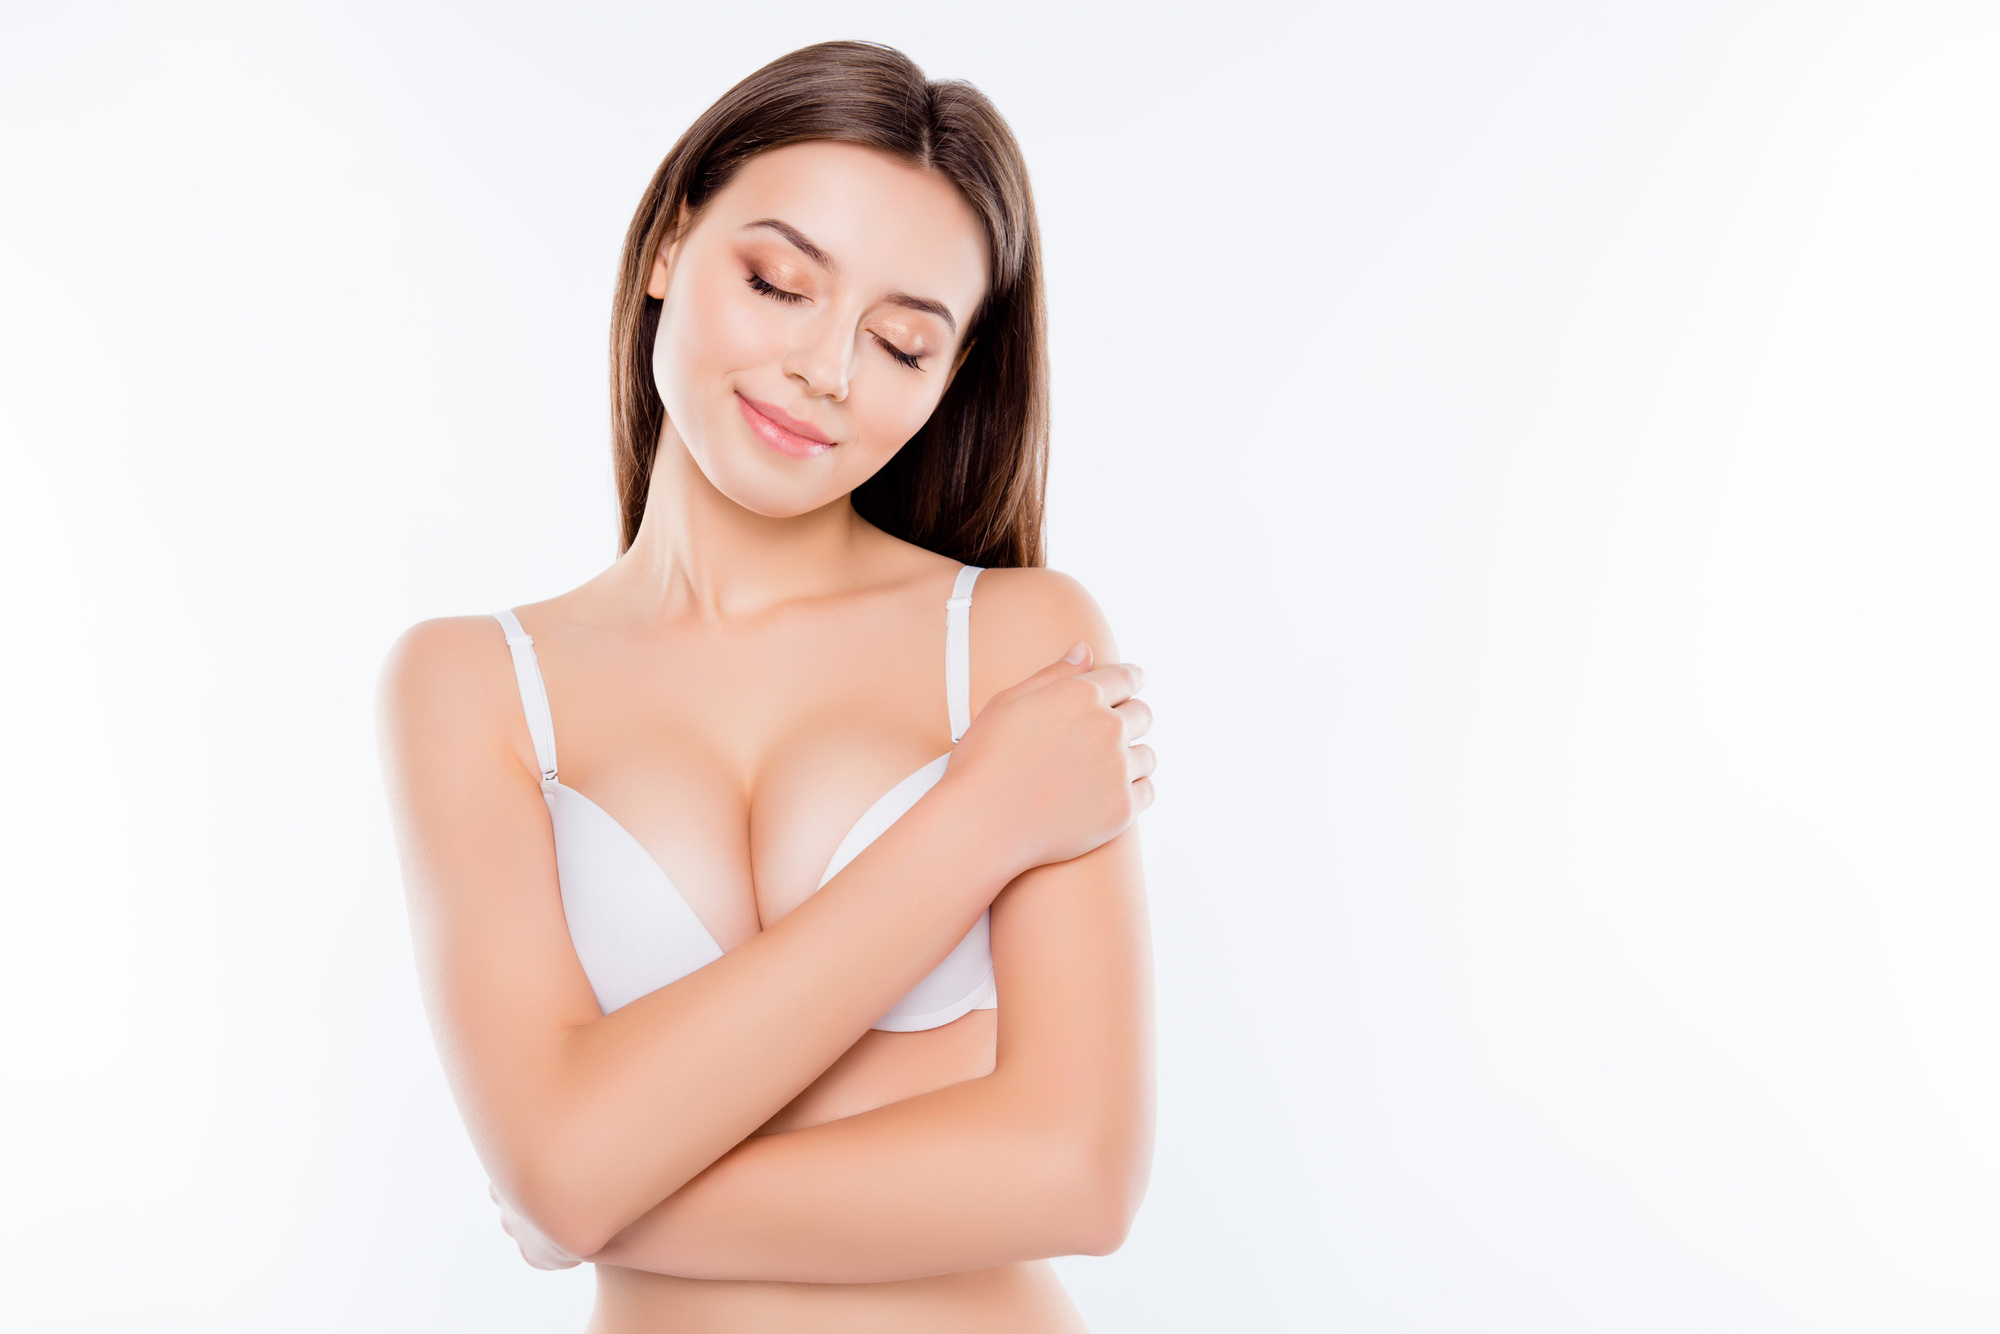 10-tips-for-natural-breast-enhancement-that-actually-work